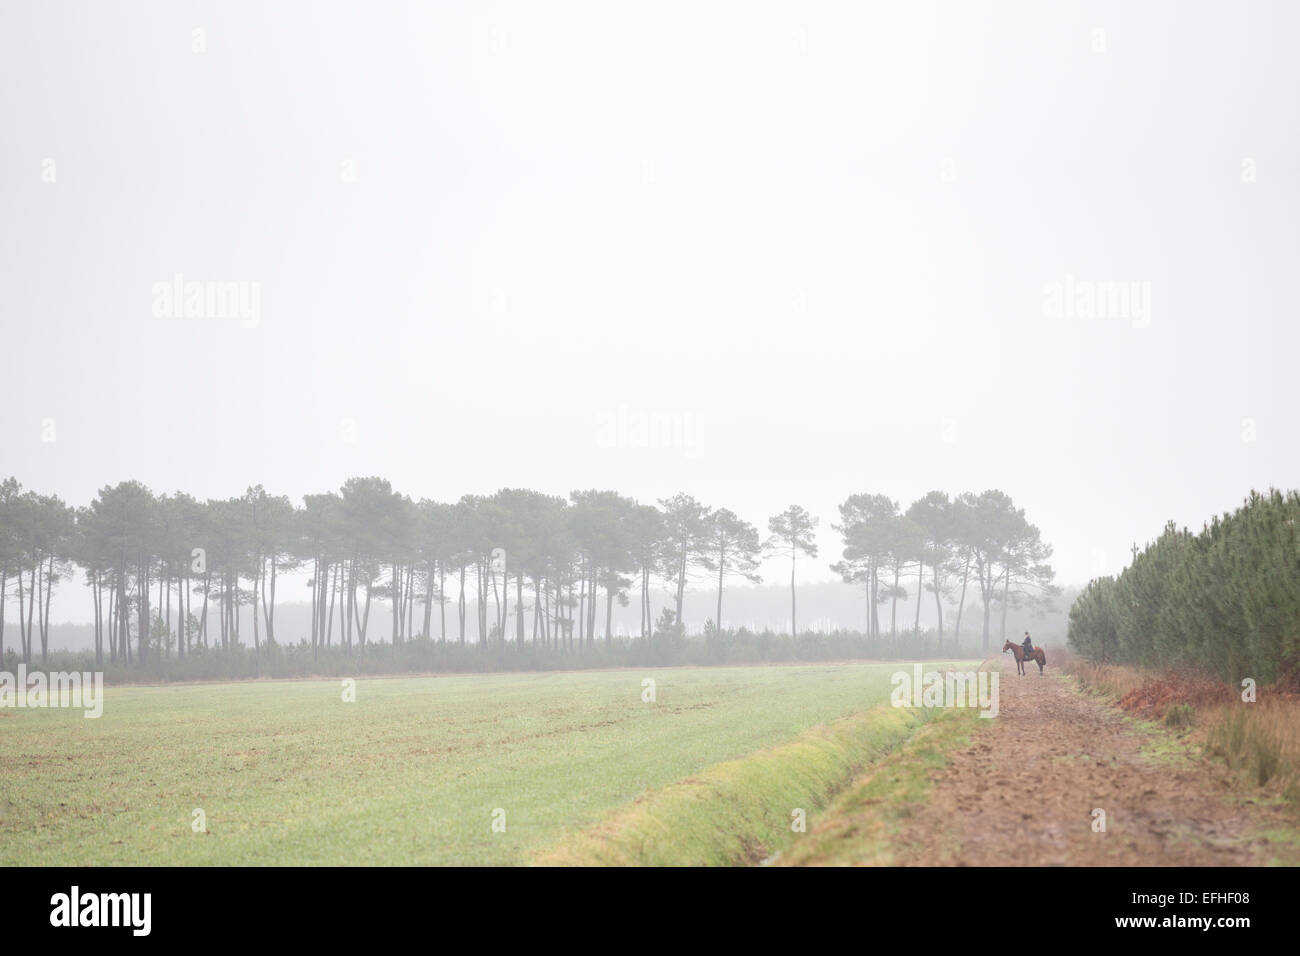 A male horse rider taking part in a deer hunting with hounds in the Landes region. Landscape. - Stock Image